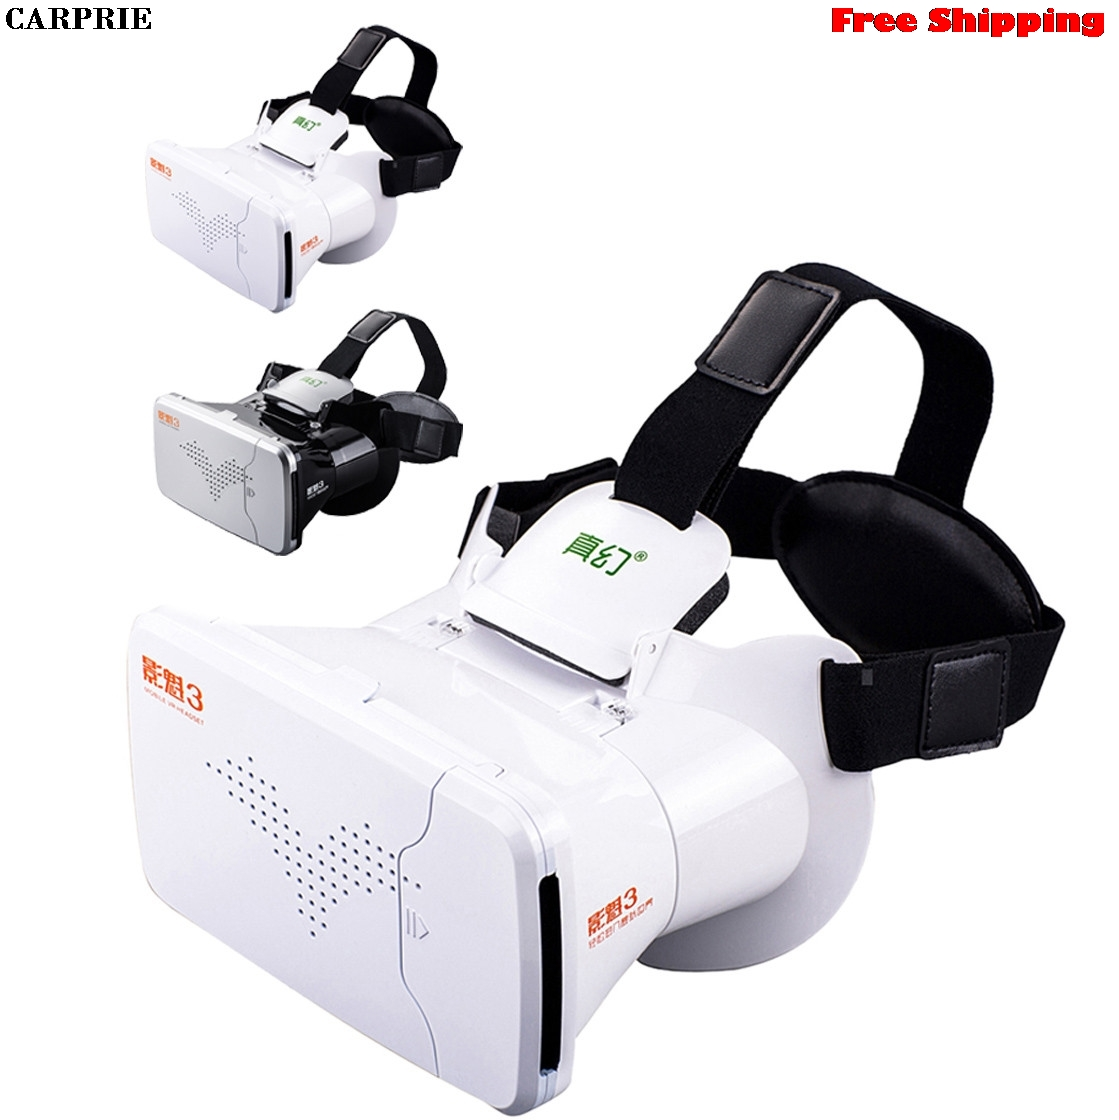 CARPRIE Google Cardboard for VR BOX Virtual Reality 3D Glasses For iPhone 8 Plus Free Shipping Drop Shipping